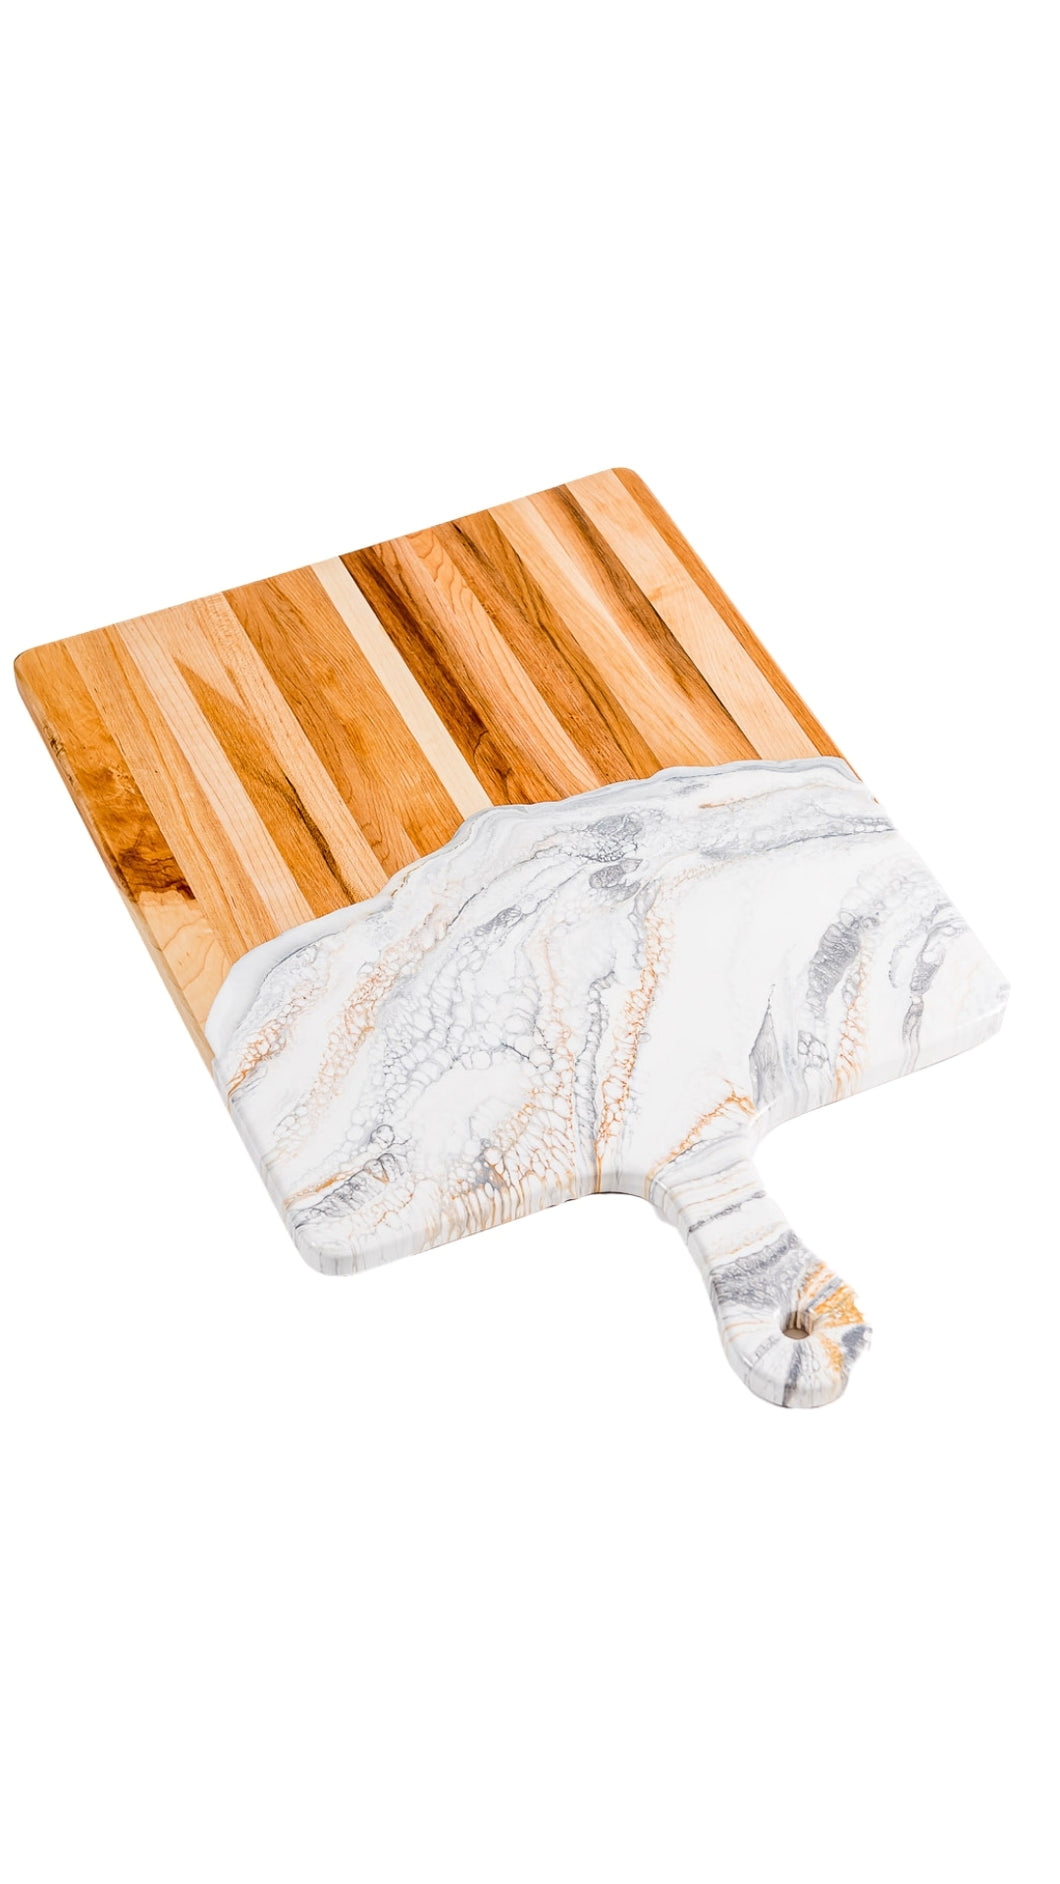 White, Grey, and Gold Cheeseboard 15